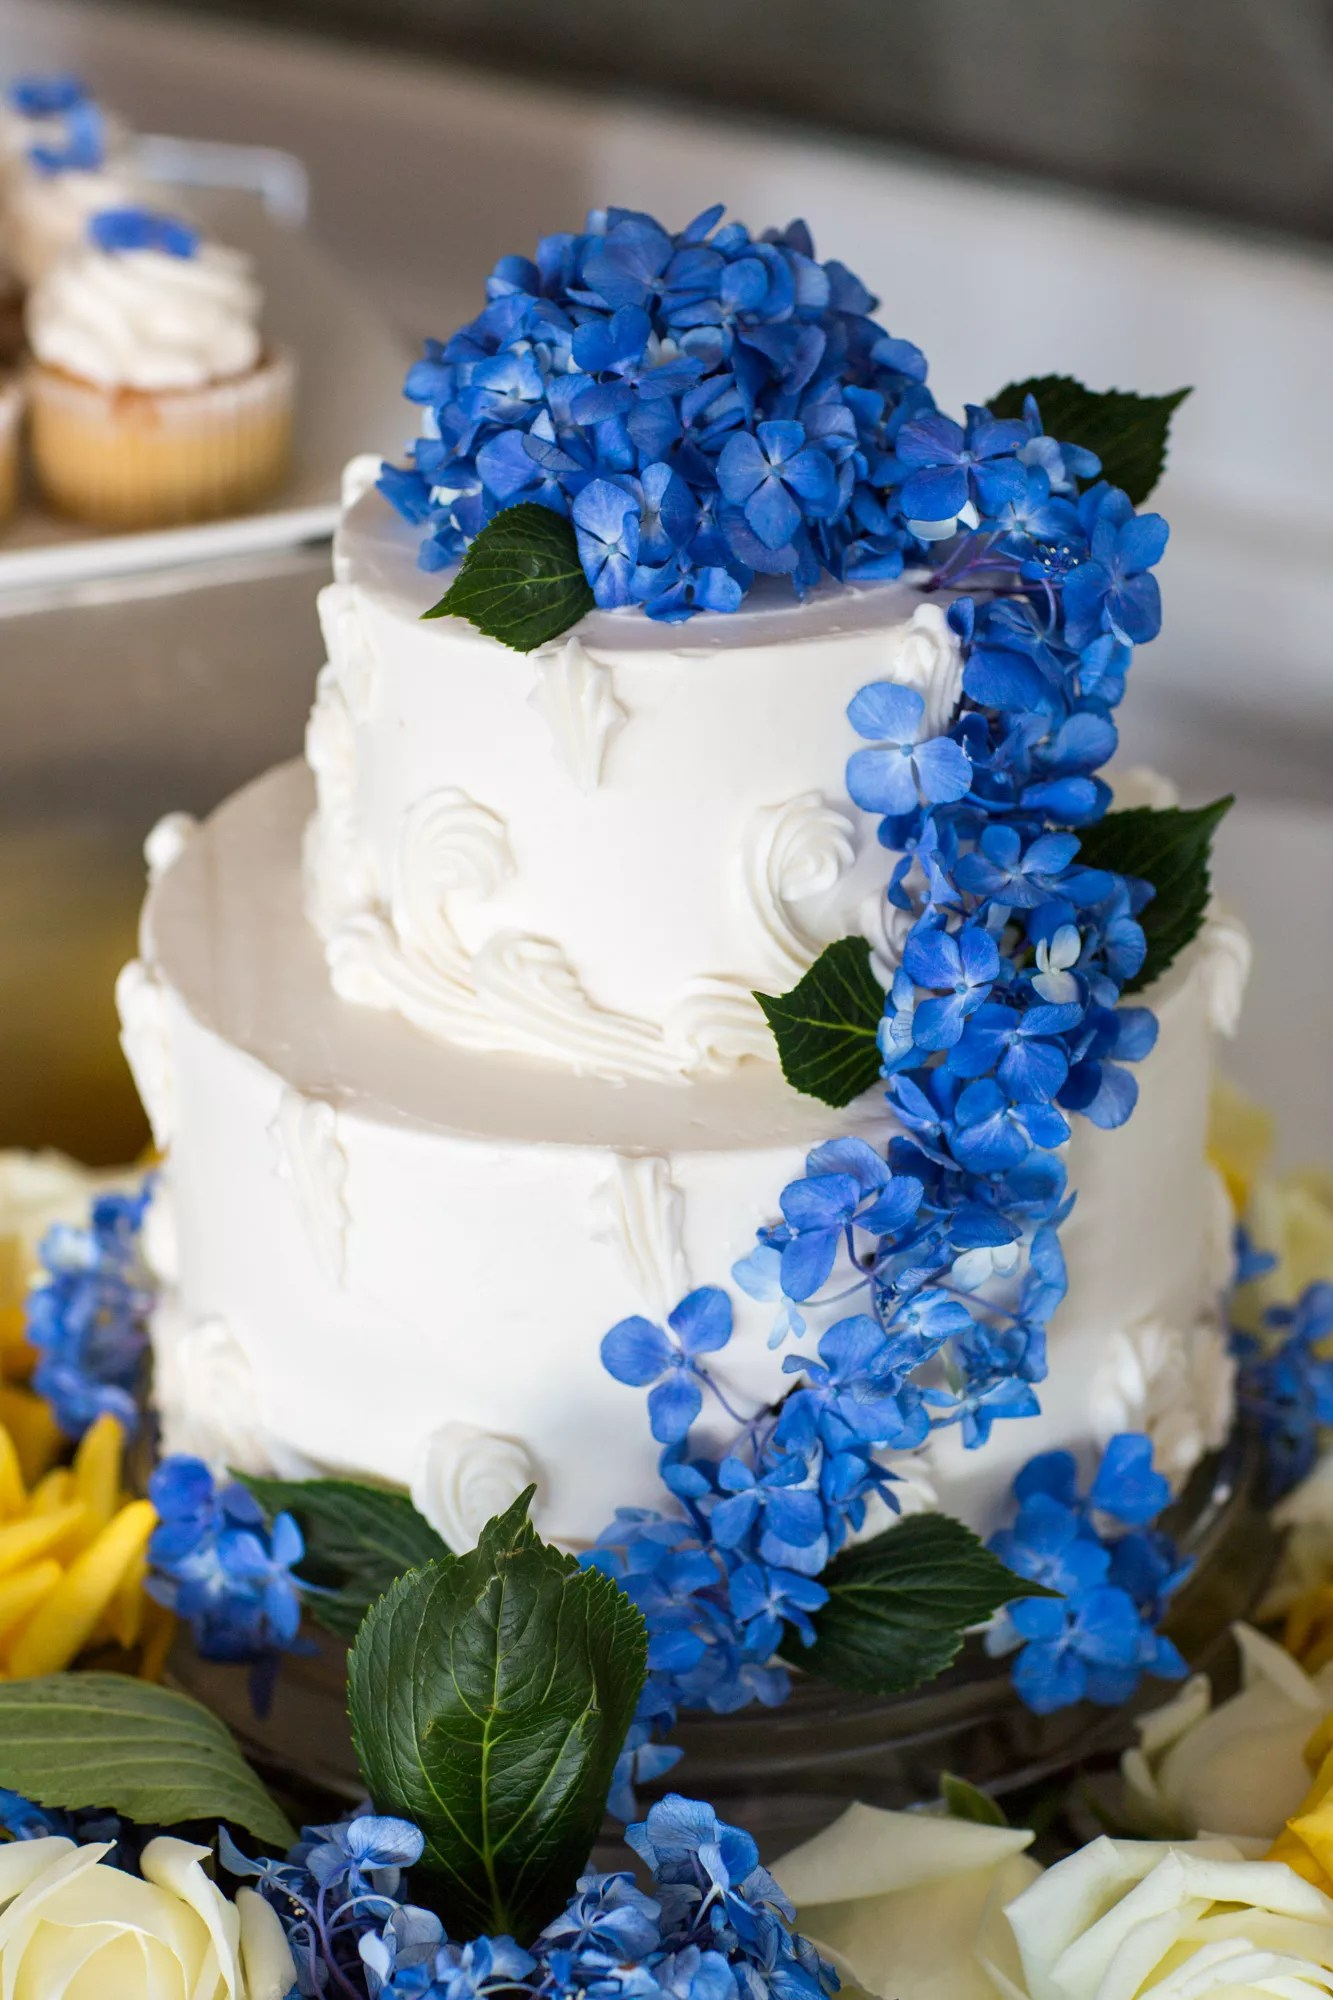 Two Tier Wedding Cake With Cascading Blue Flowers